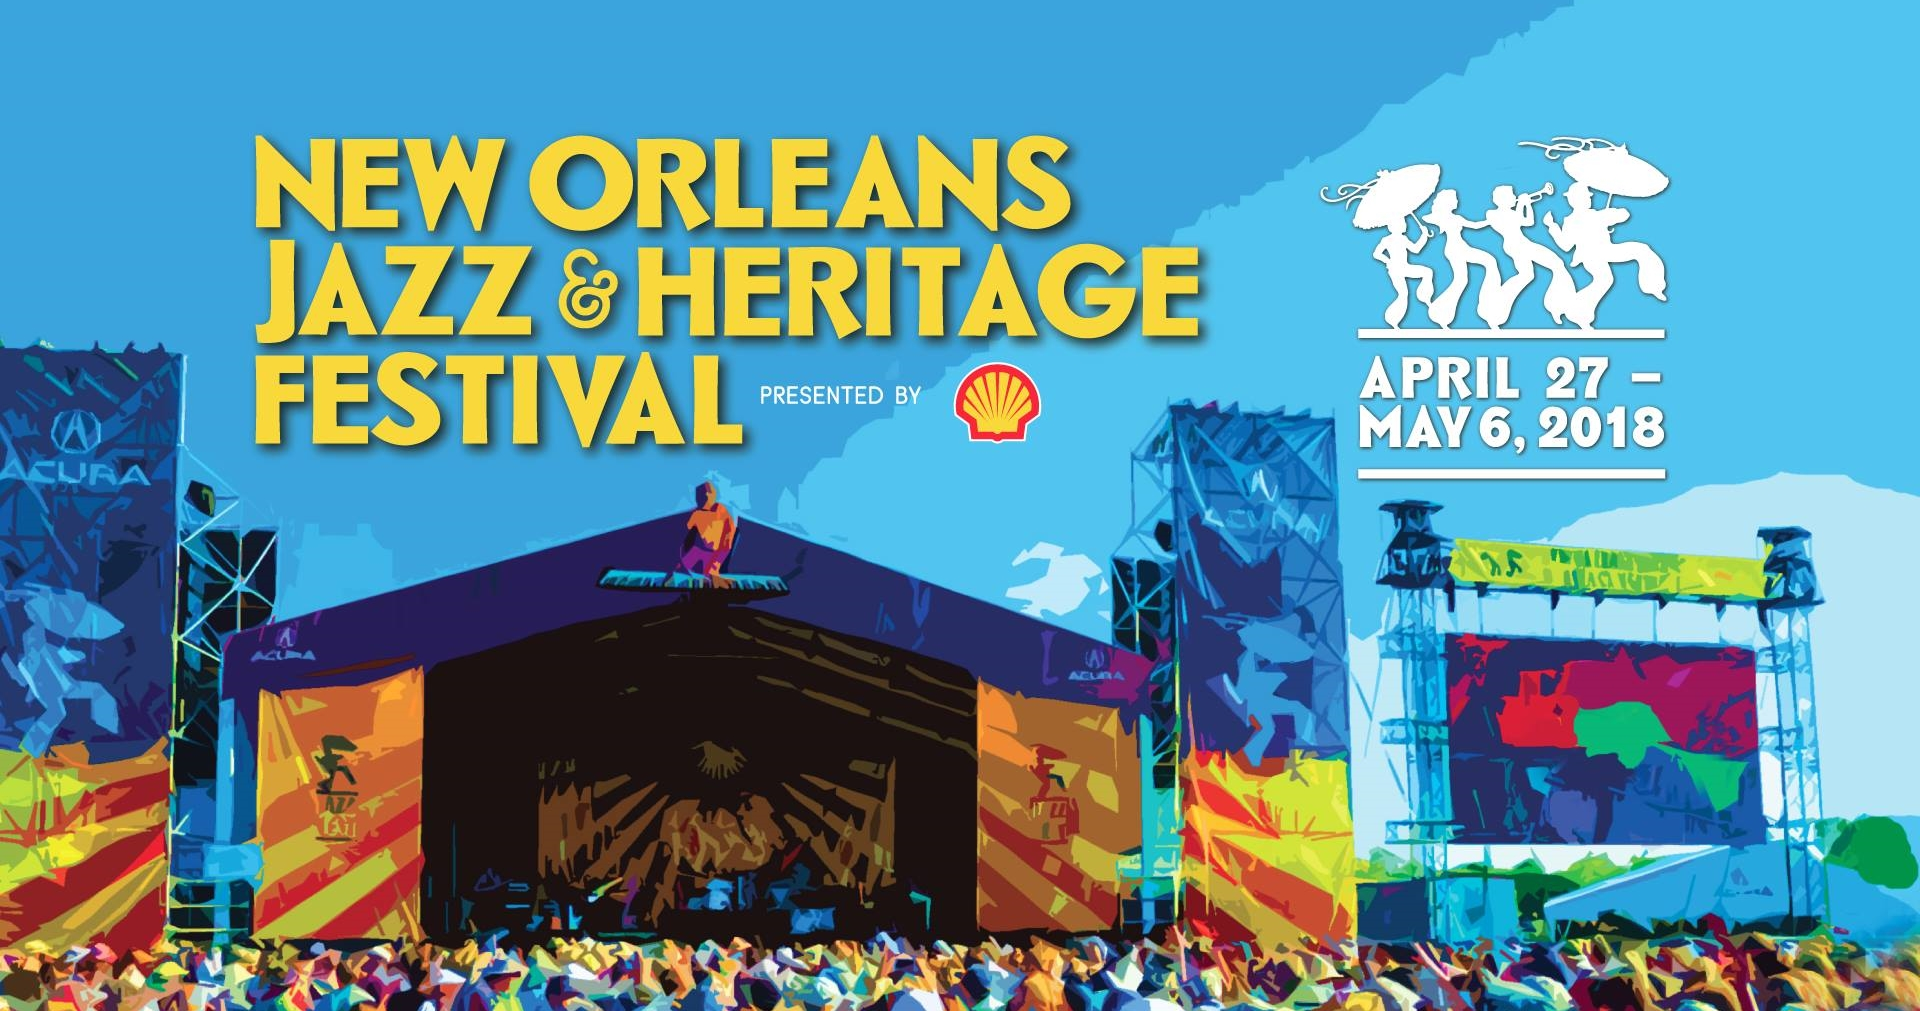 June Calendar New Orleans : Wuog goes to new orleans jazz heritage festival